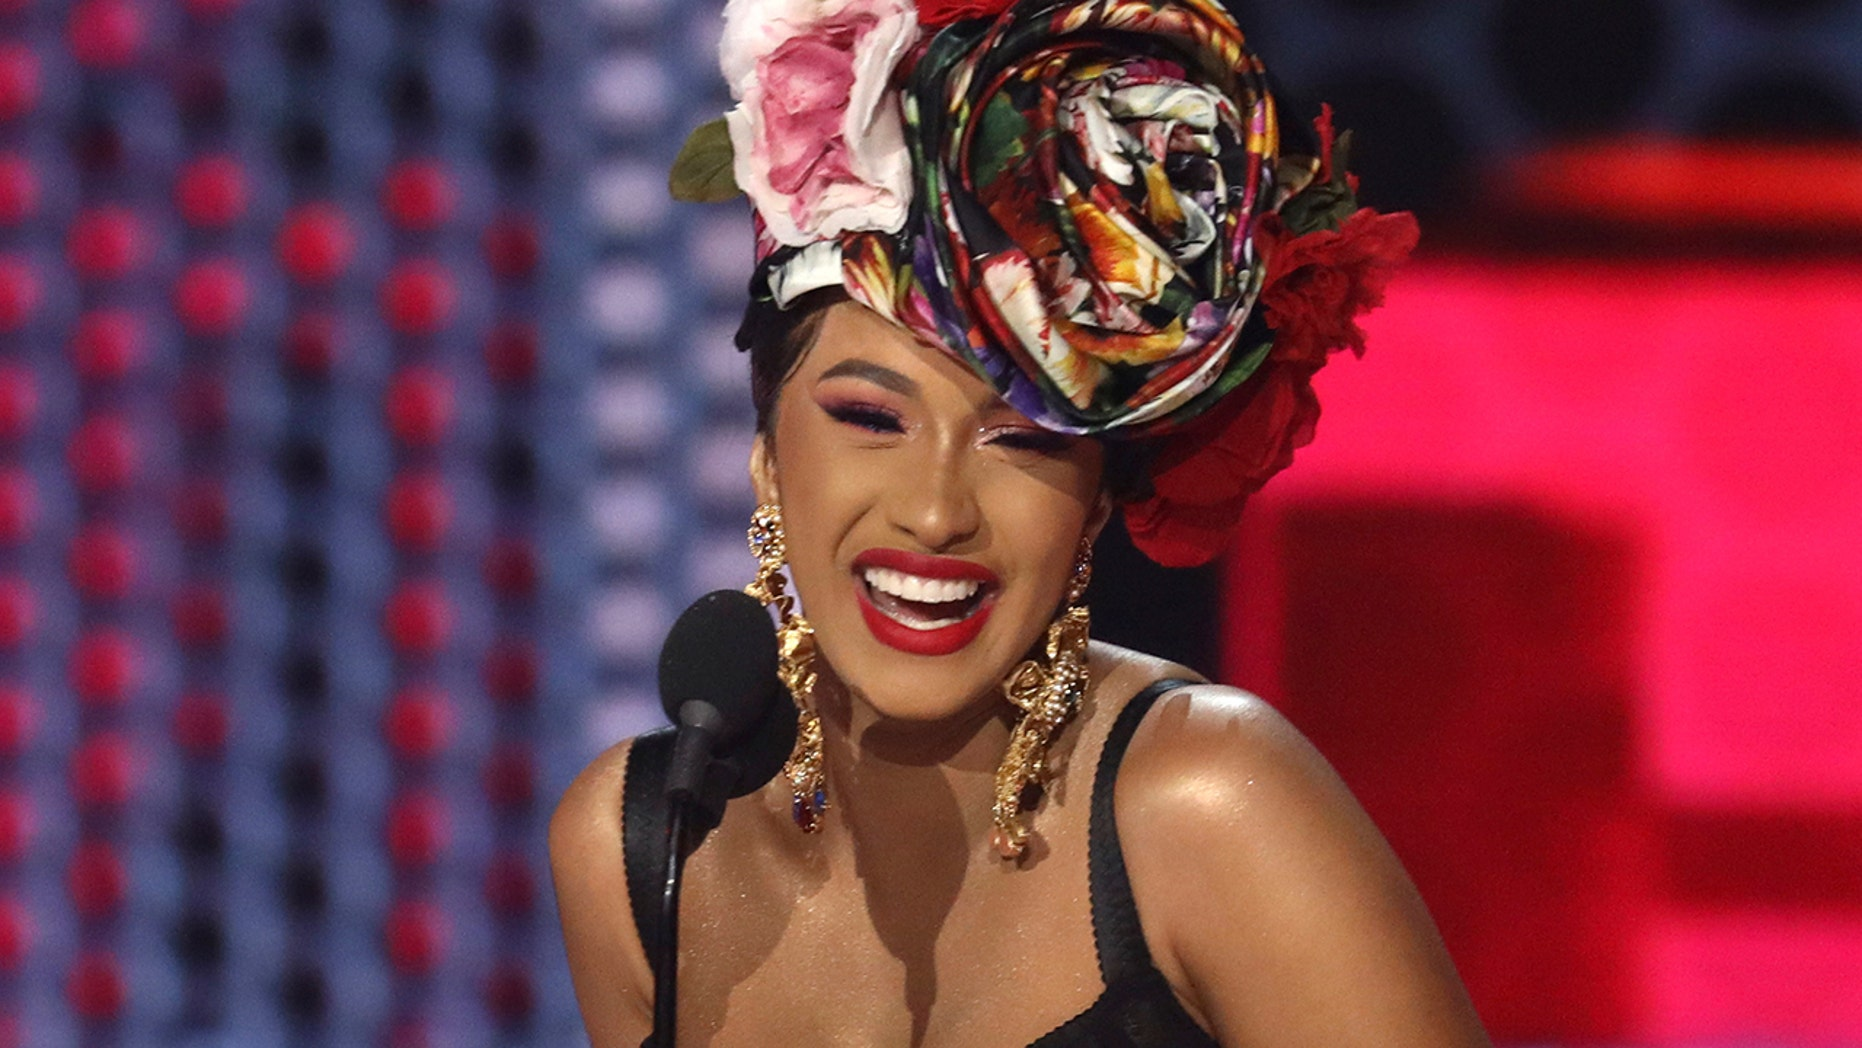 Cardi B Shares the TMI Way Childbirth Has Affected Her Body